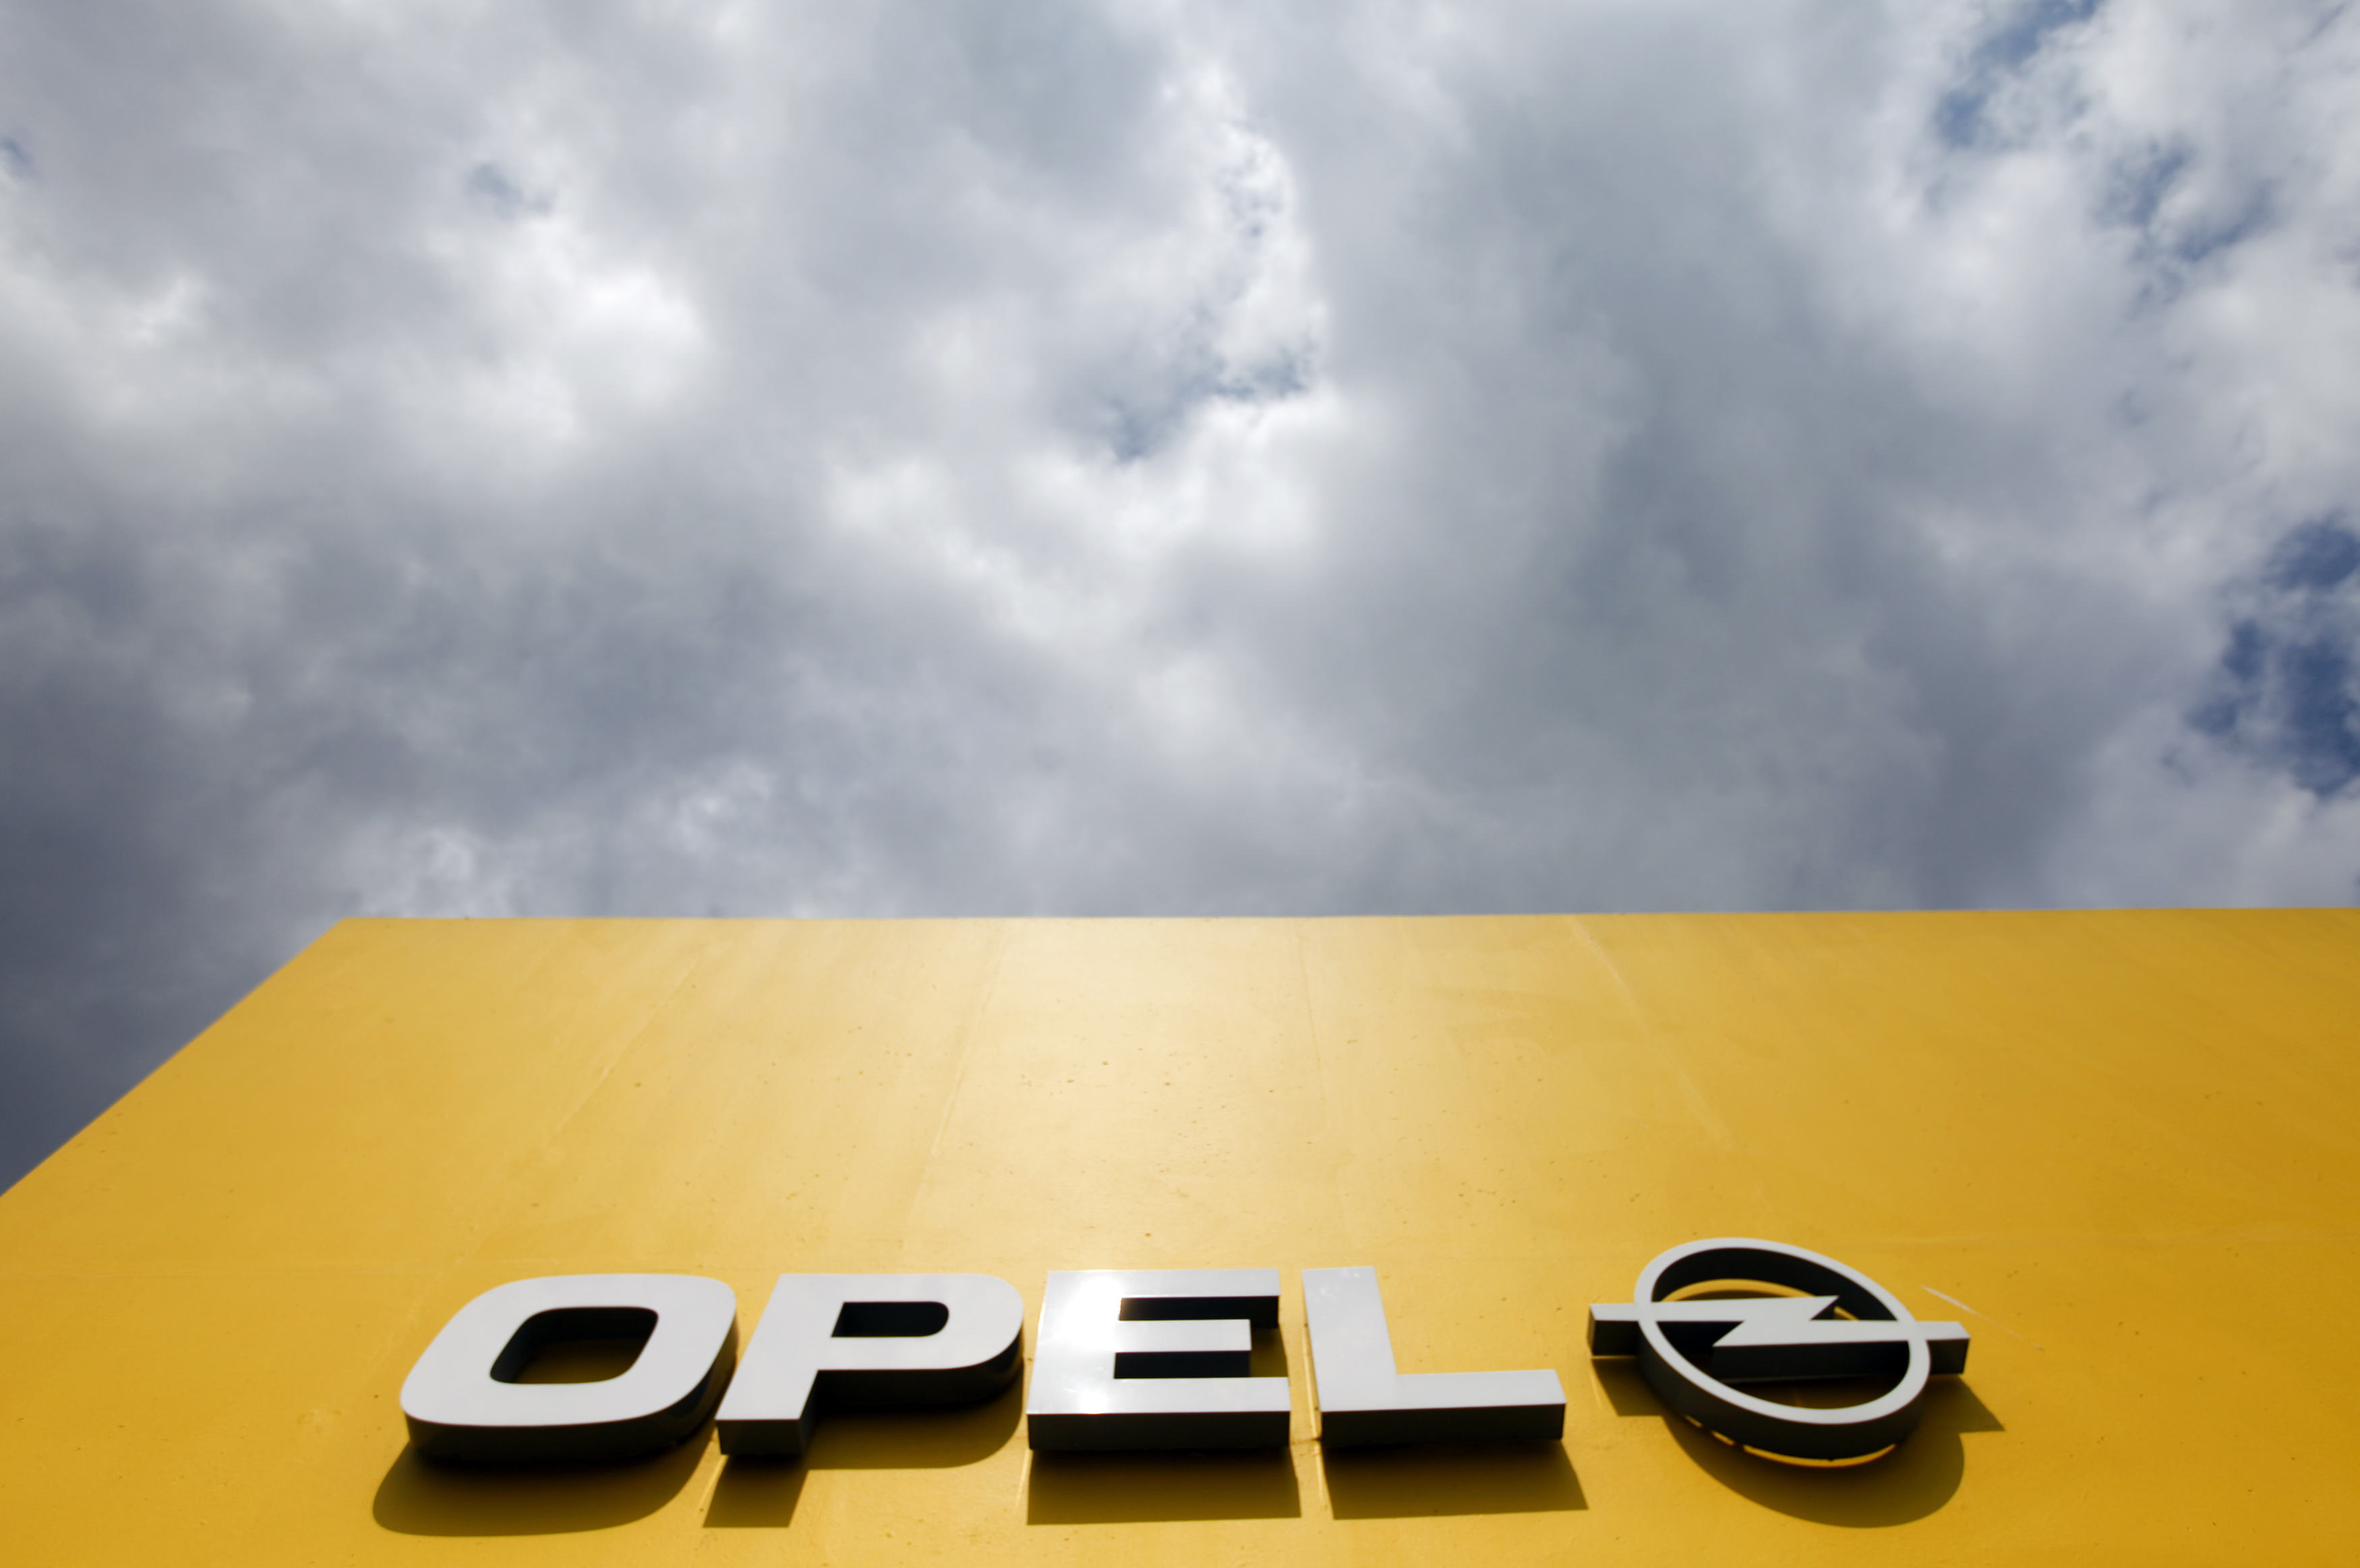 The logo of an Opel car dealer is pictured in Himmelkorn